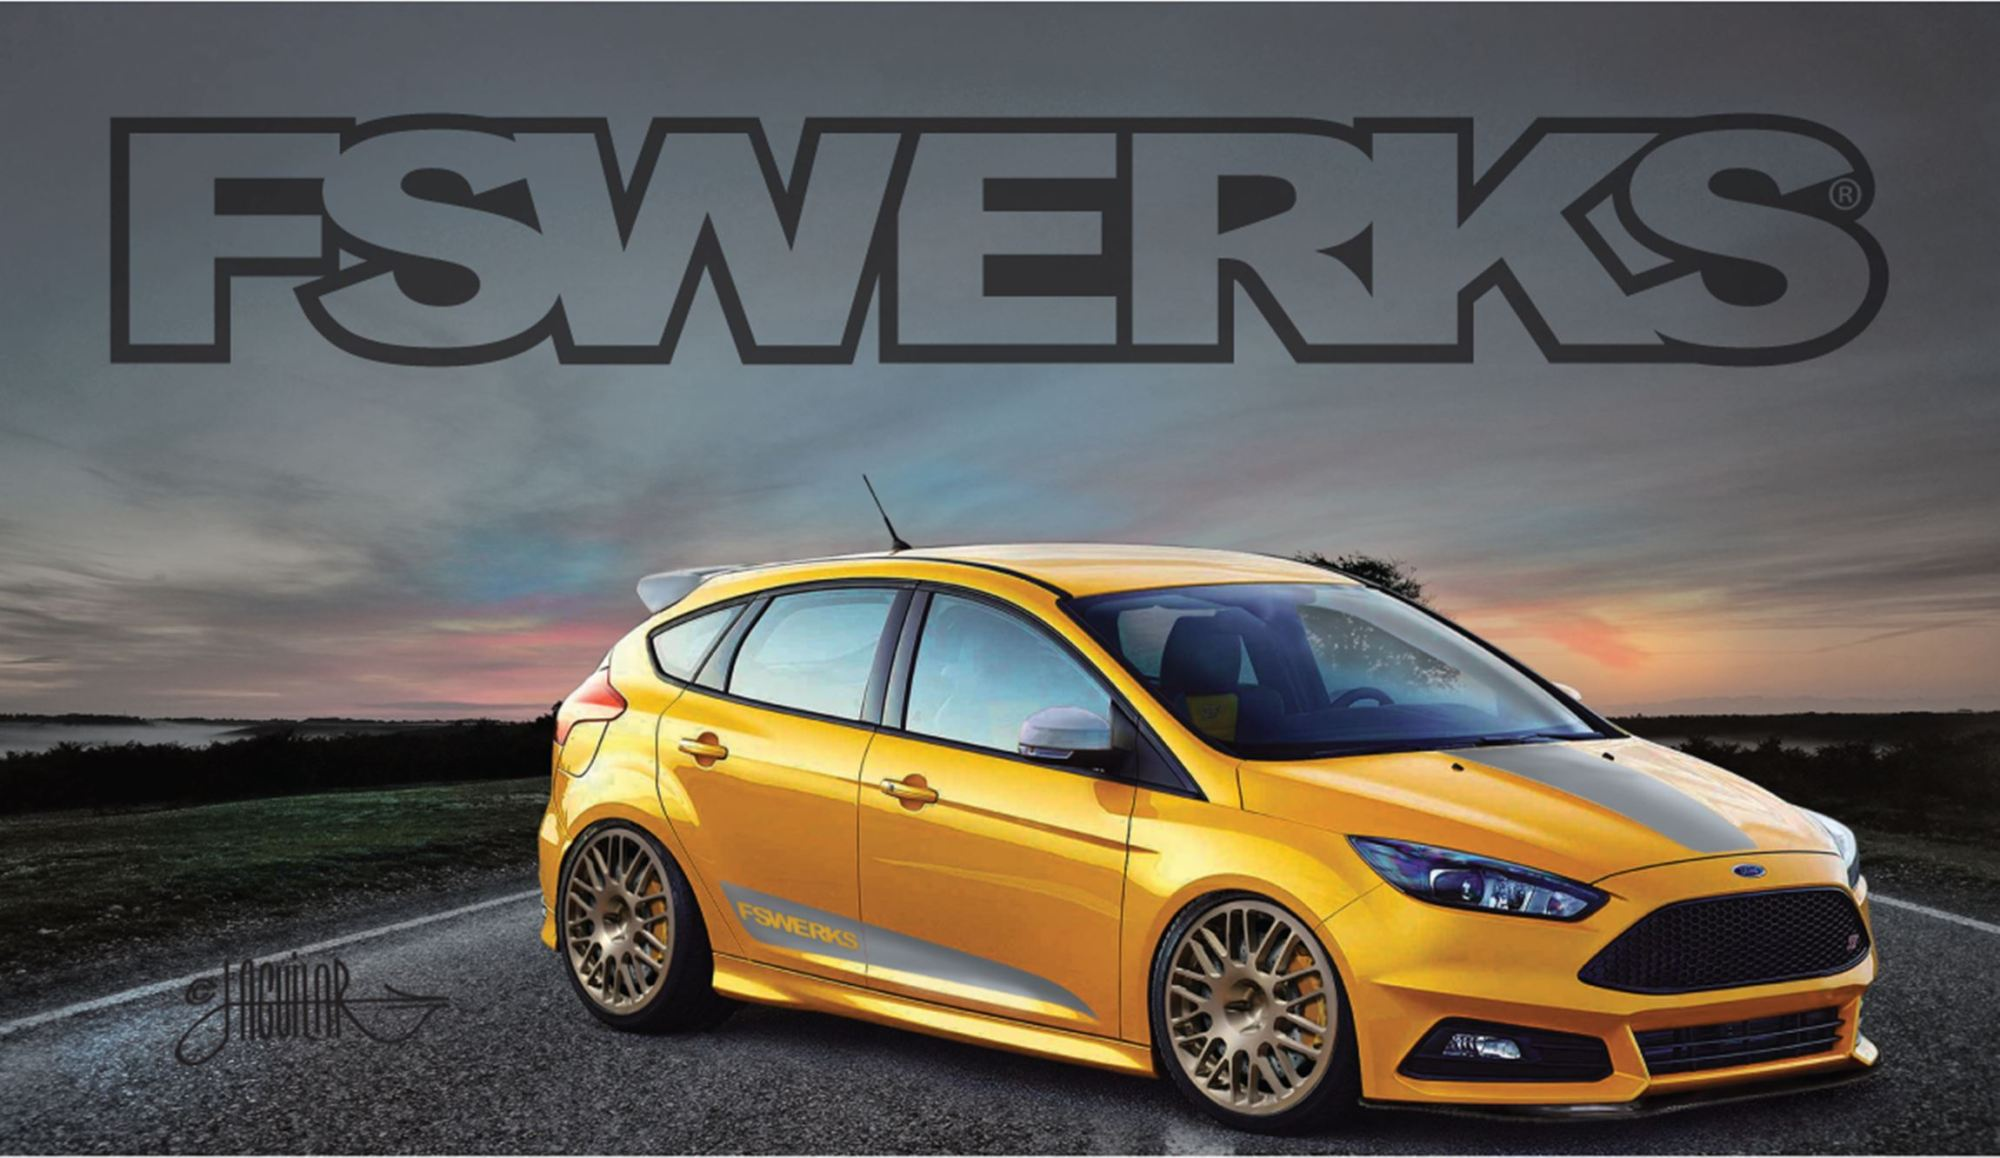 hight resolution of ford focus st by fswerks